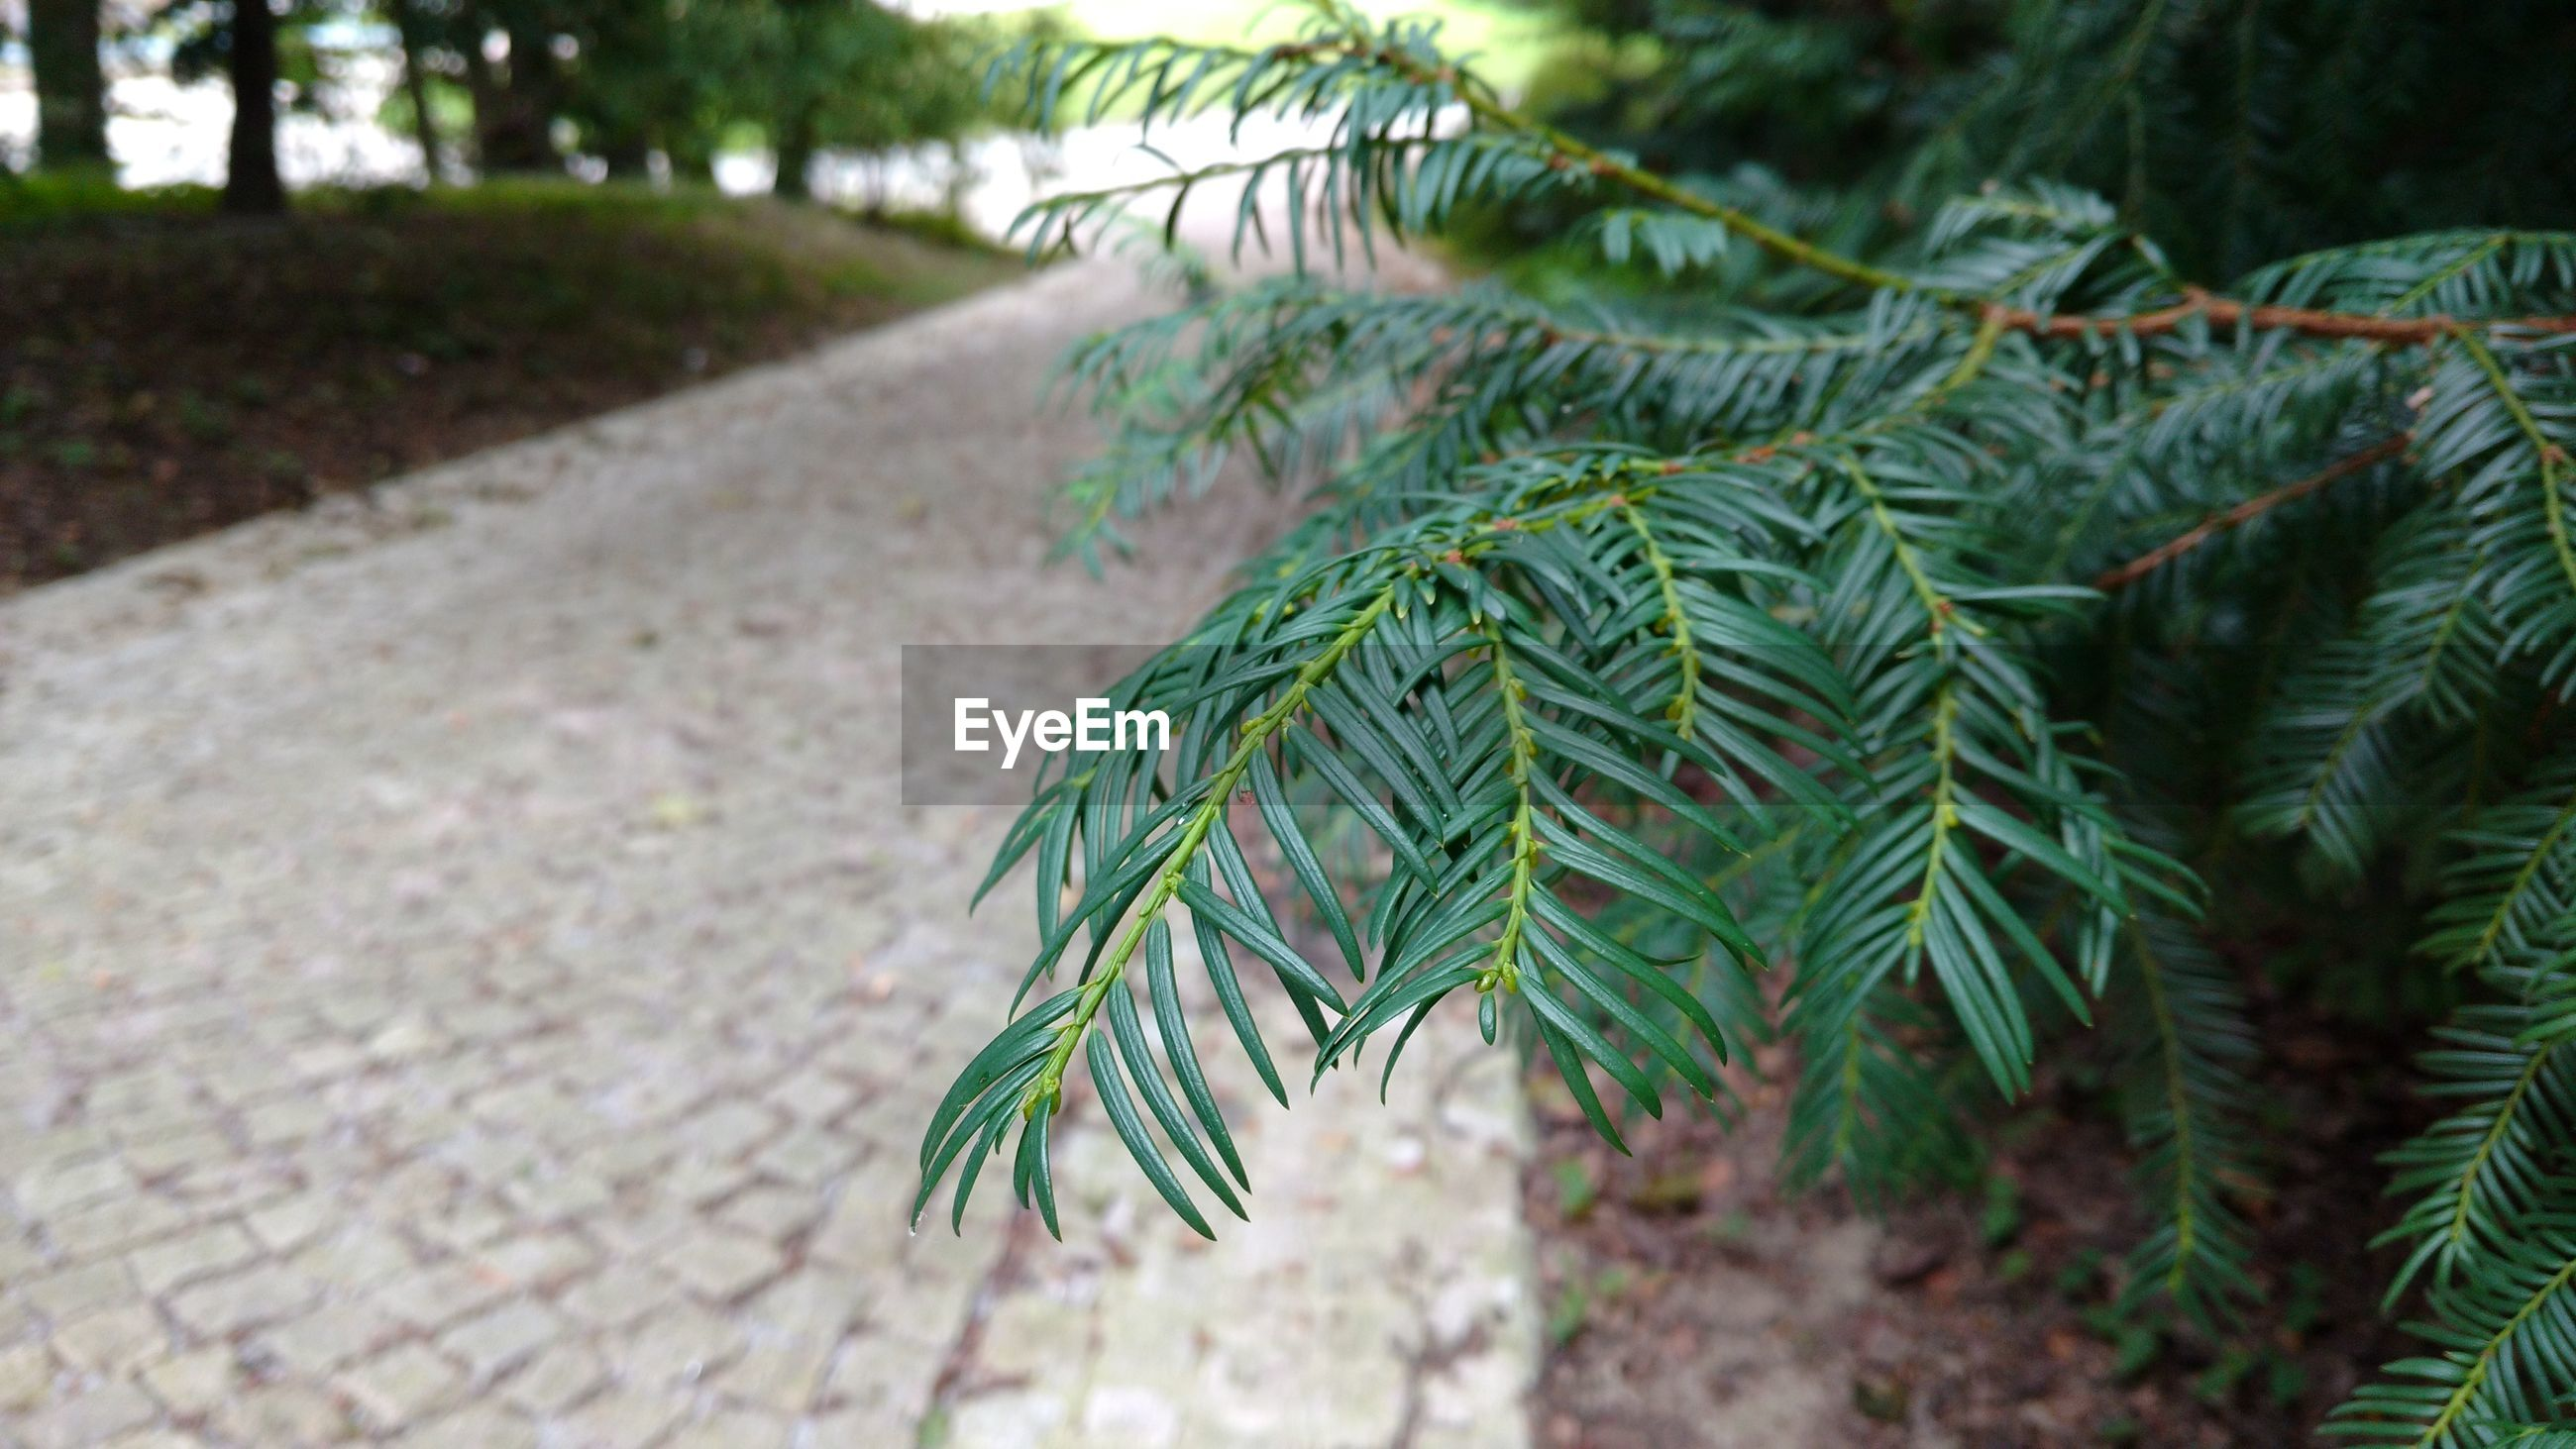 CLOSE-UP OF PINE TREE ON FOOTPATH IN PARK